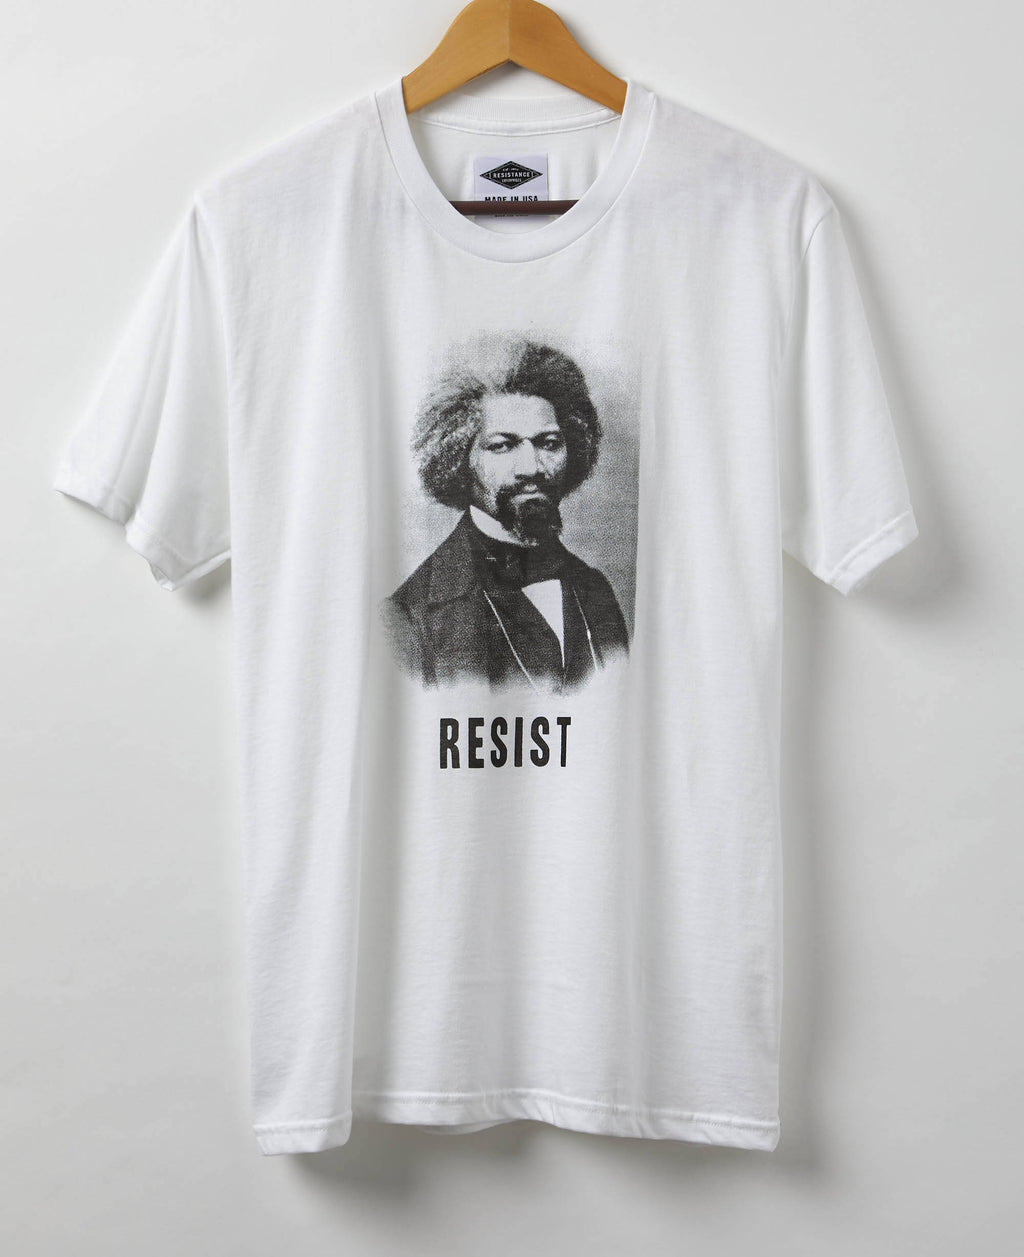 Resist Shirt - Frederick Douglass Men's T-Shirt - American Hero of the Resistance - Made in USA